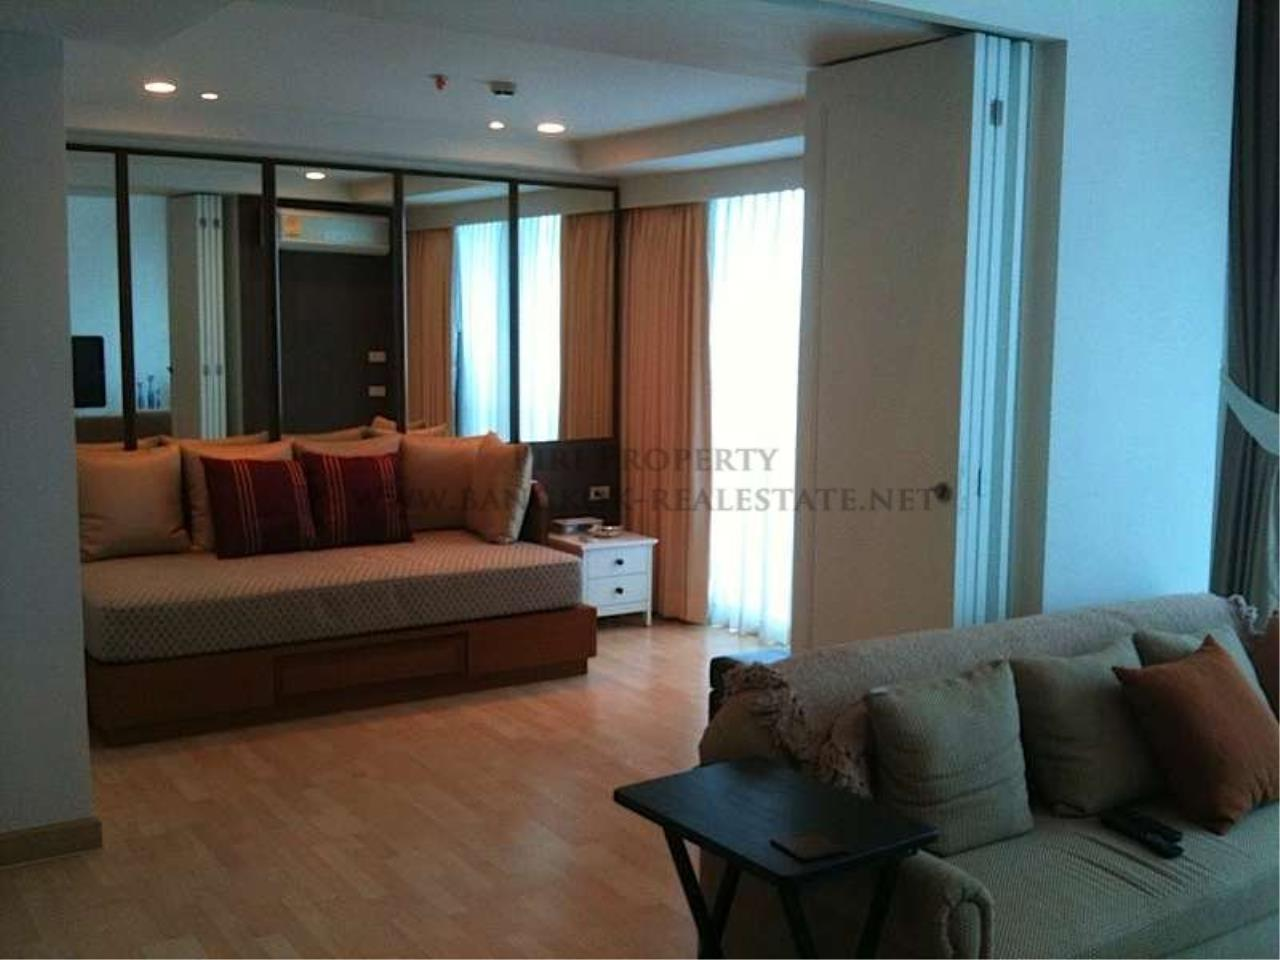 Piri Property Agency's 2 Bedroom Duplex Condo for Rent on Rajdamri Road - The Rajdamri Condo 2